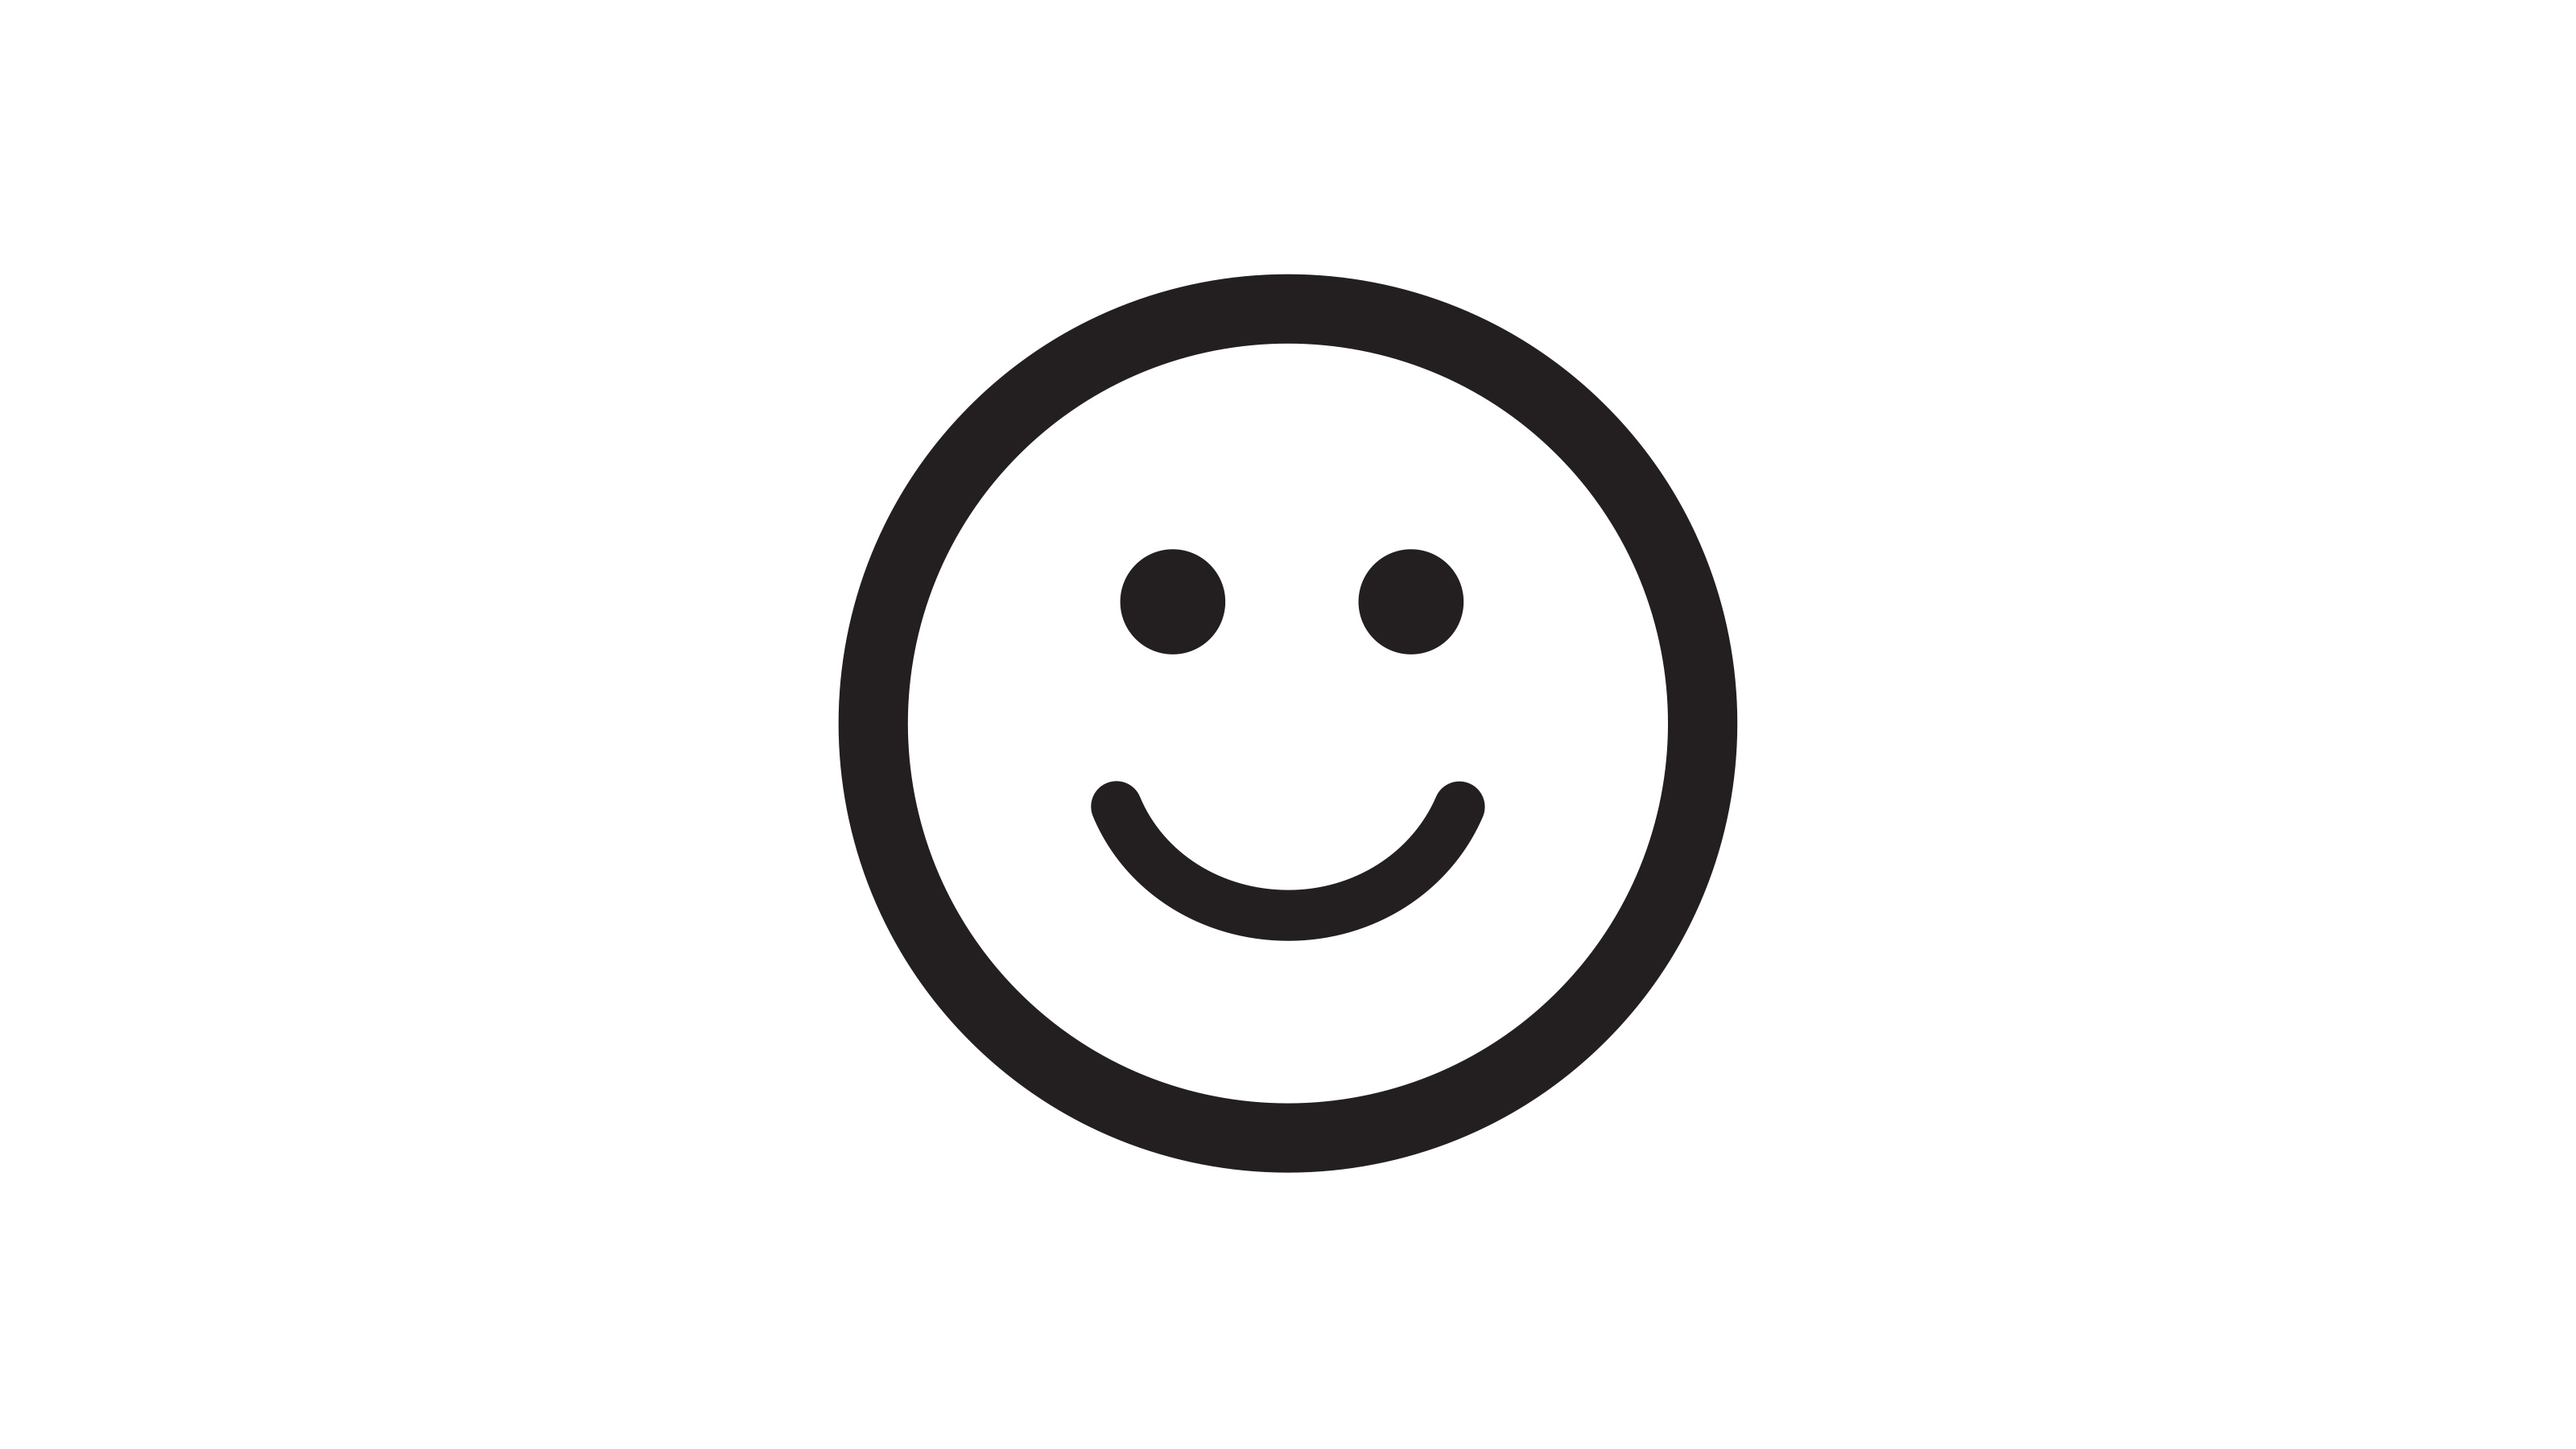 Happy smiley face to create sense of patient comfort